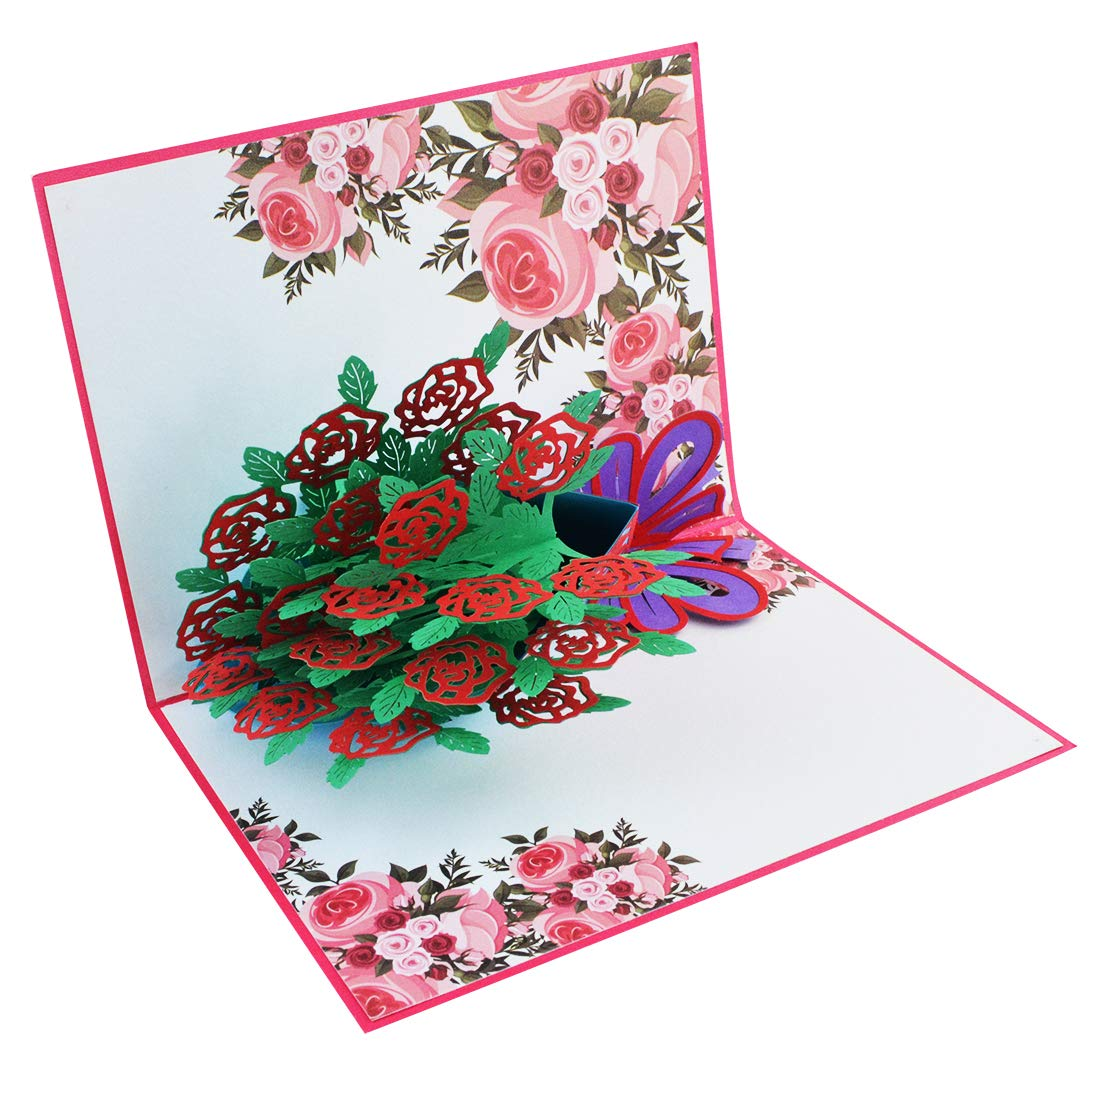 Tongcloud Pop Up 3D Card,3D Greeting Cards,Mother's Day Cards,Red Rose Bouquet Pop Up Cards with Envelope Sticker for Birthday, Wedding, Thank You